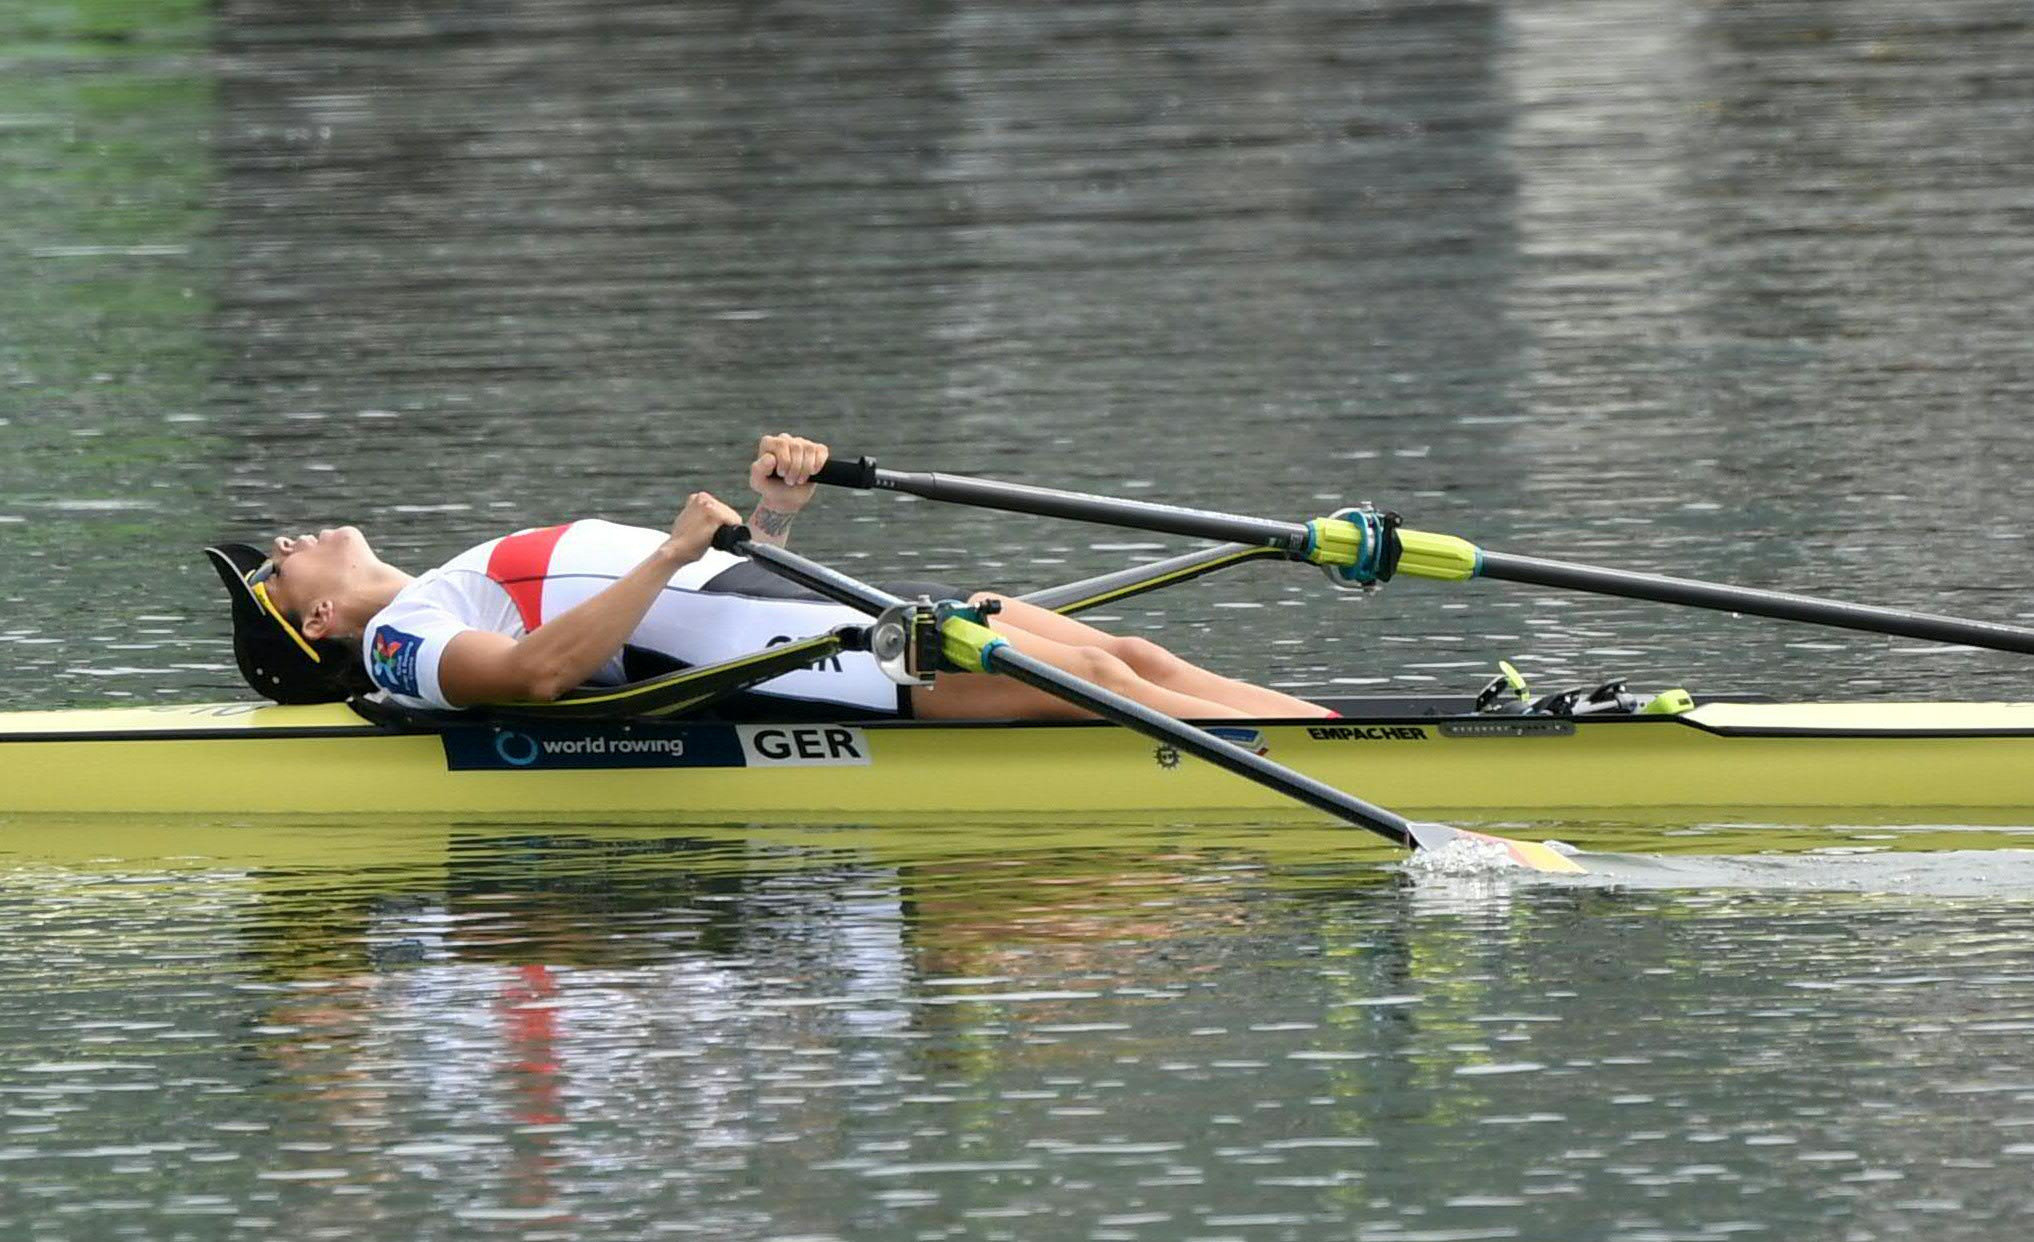 German veteran Dräger secures gold on first day of finals at World Rowing Championships